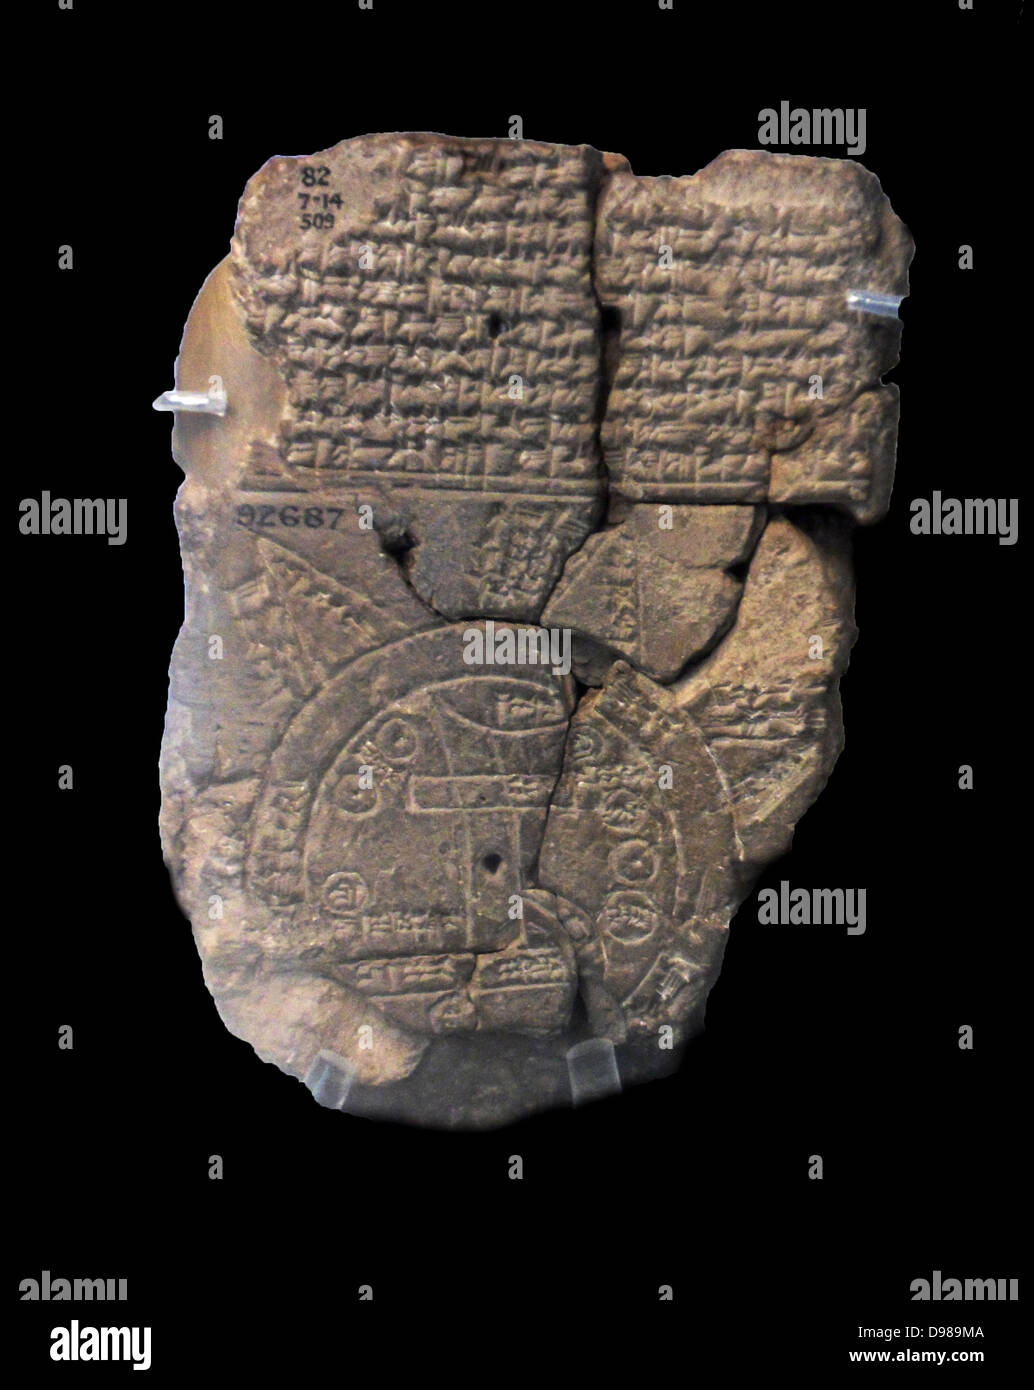 Ancient Tablet Stock Photos & Ancient Tablet Stock Images